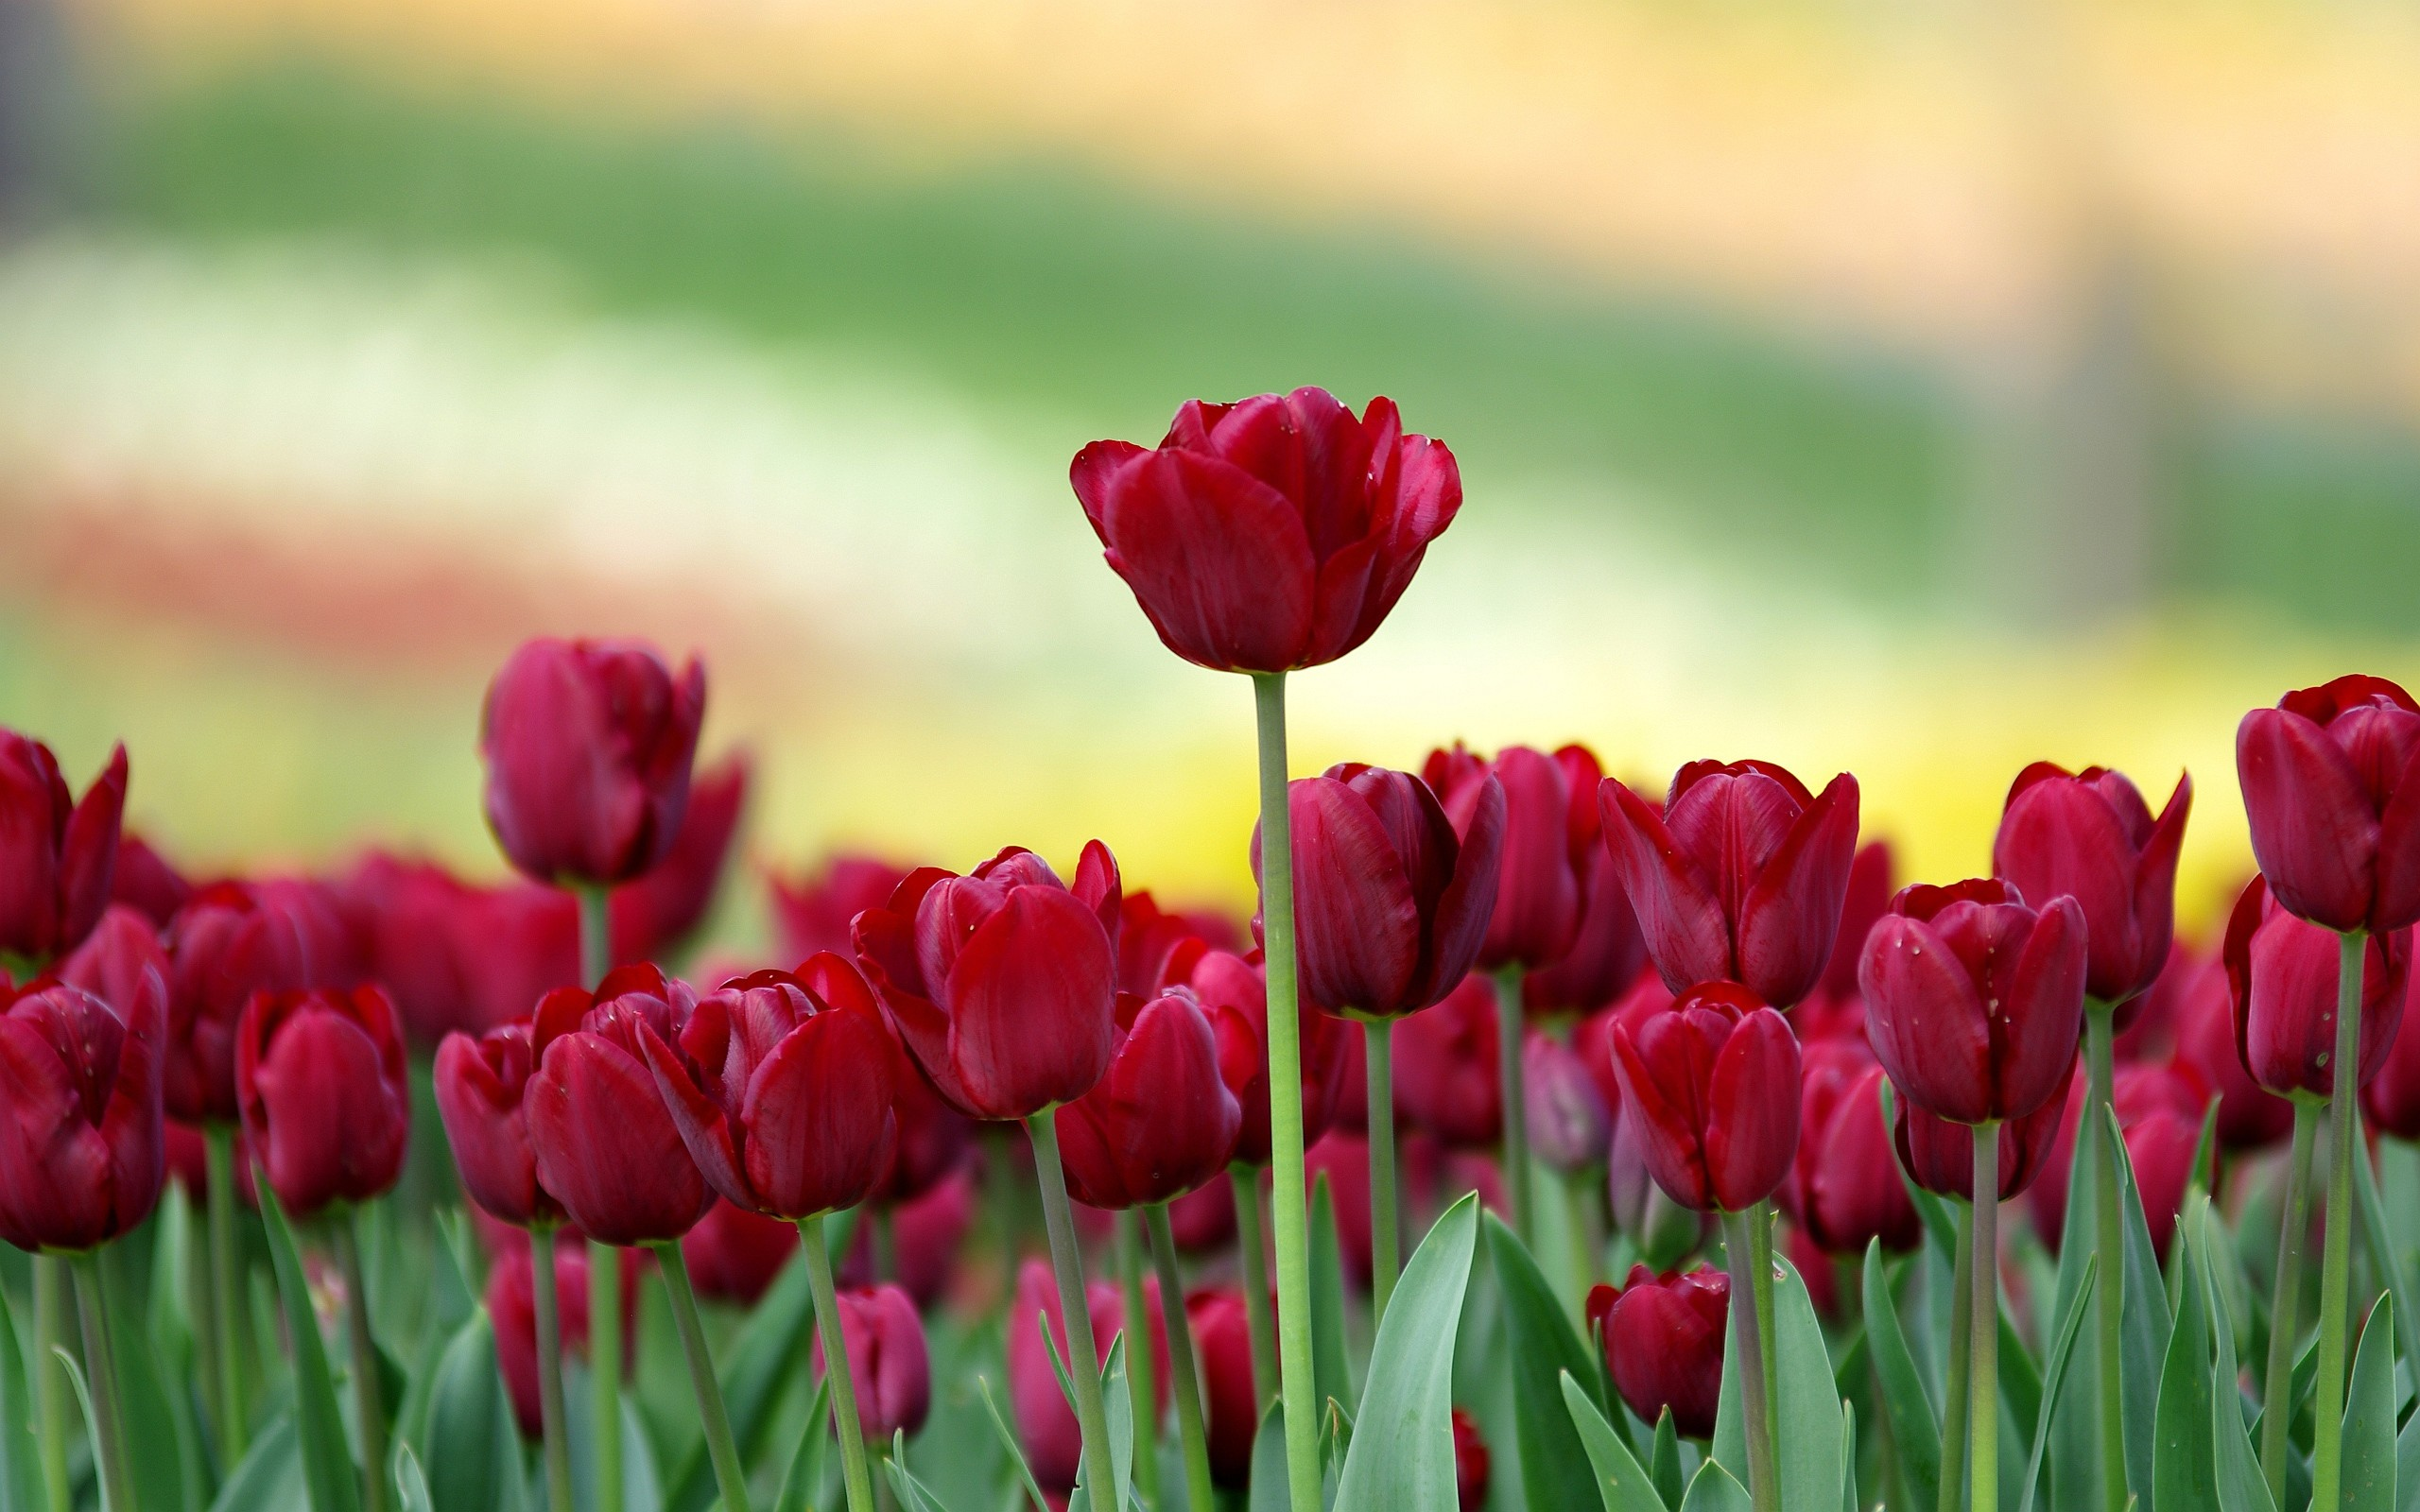 Res: 2560x1600, Red Tulip Flowers Hd Wallpapers Backgrounds